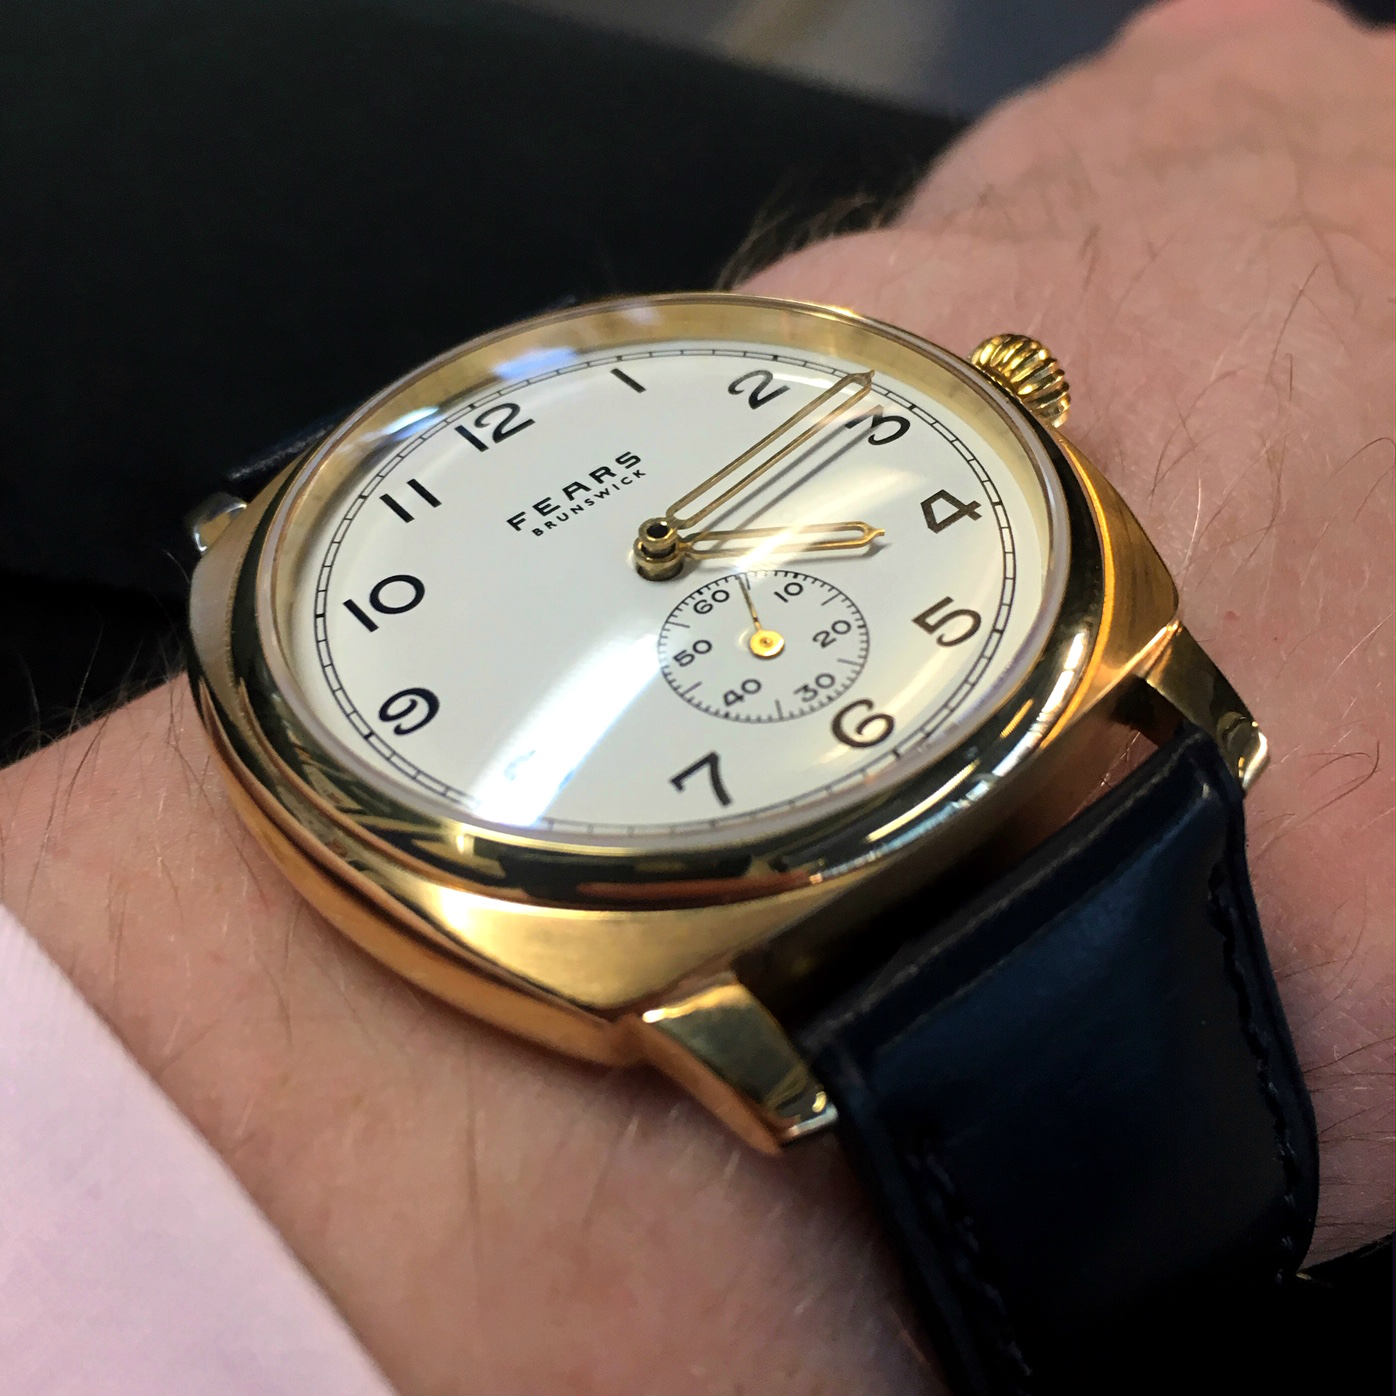 The Fears Brunswick Midas watch